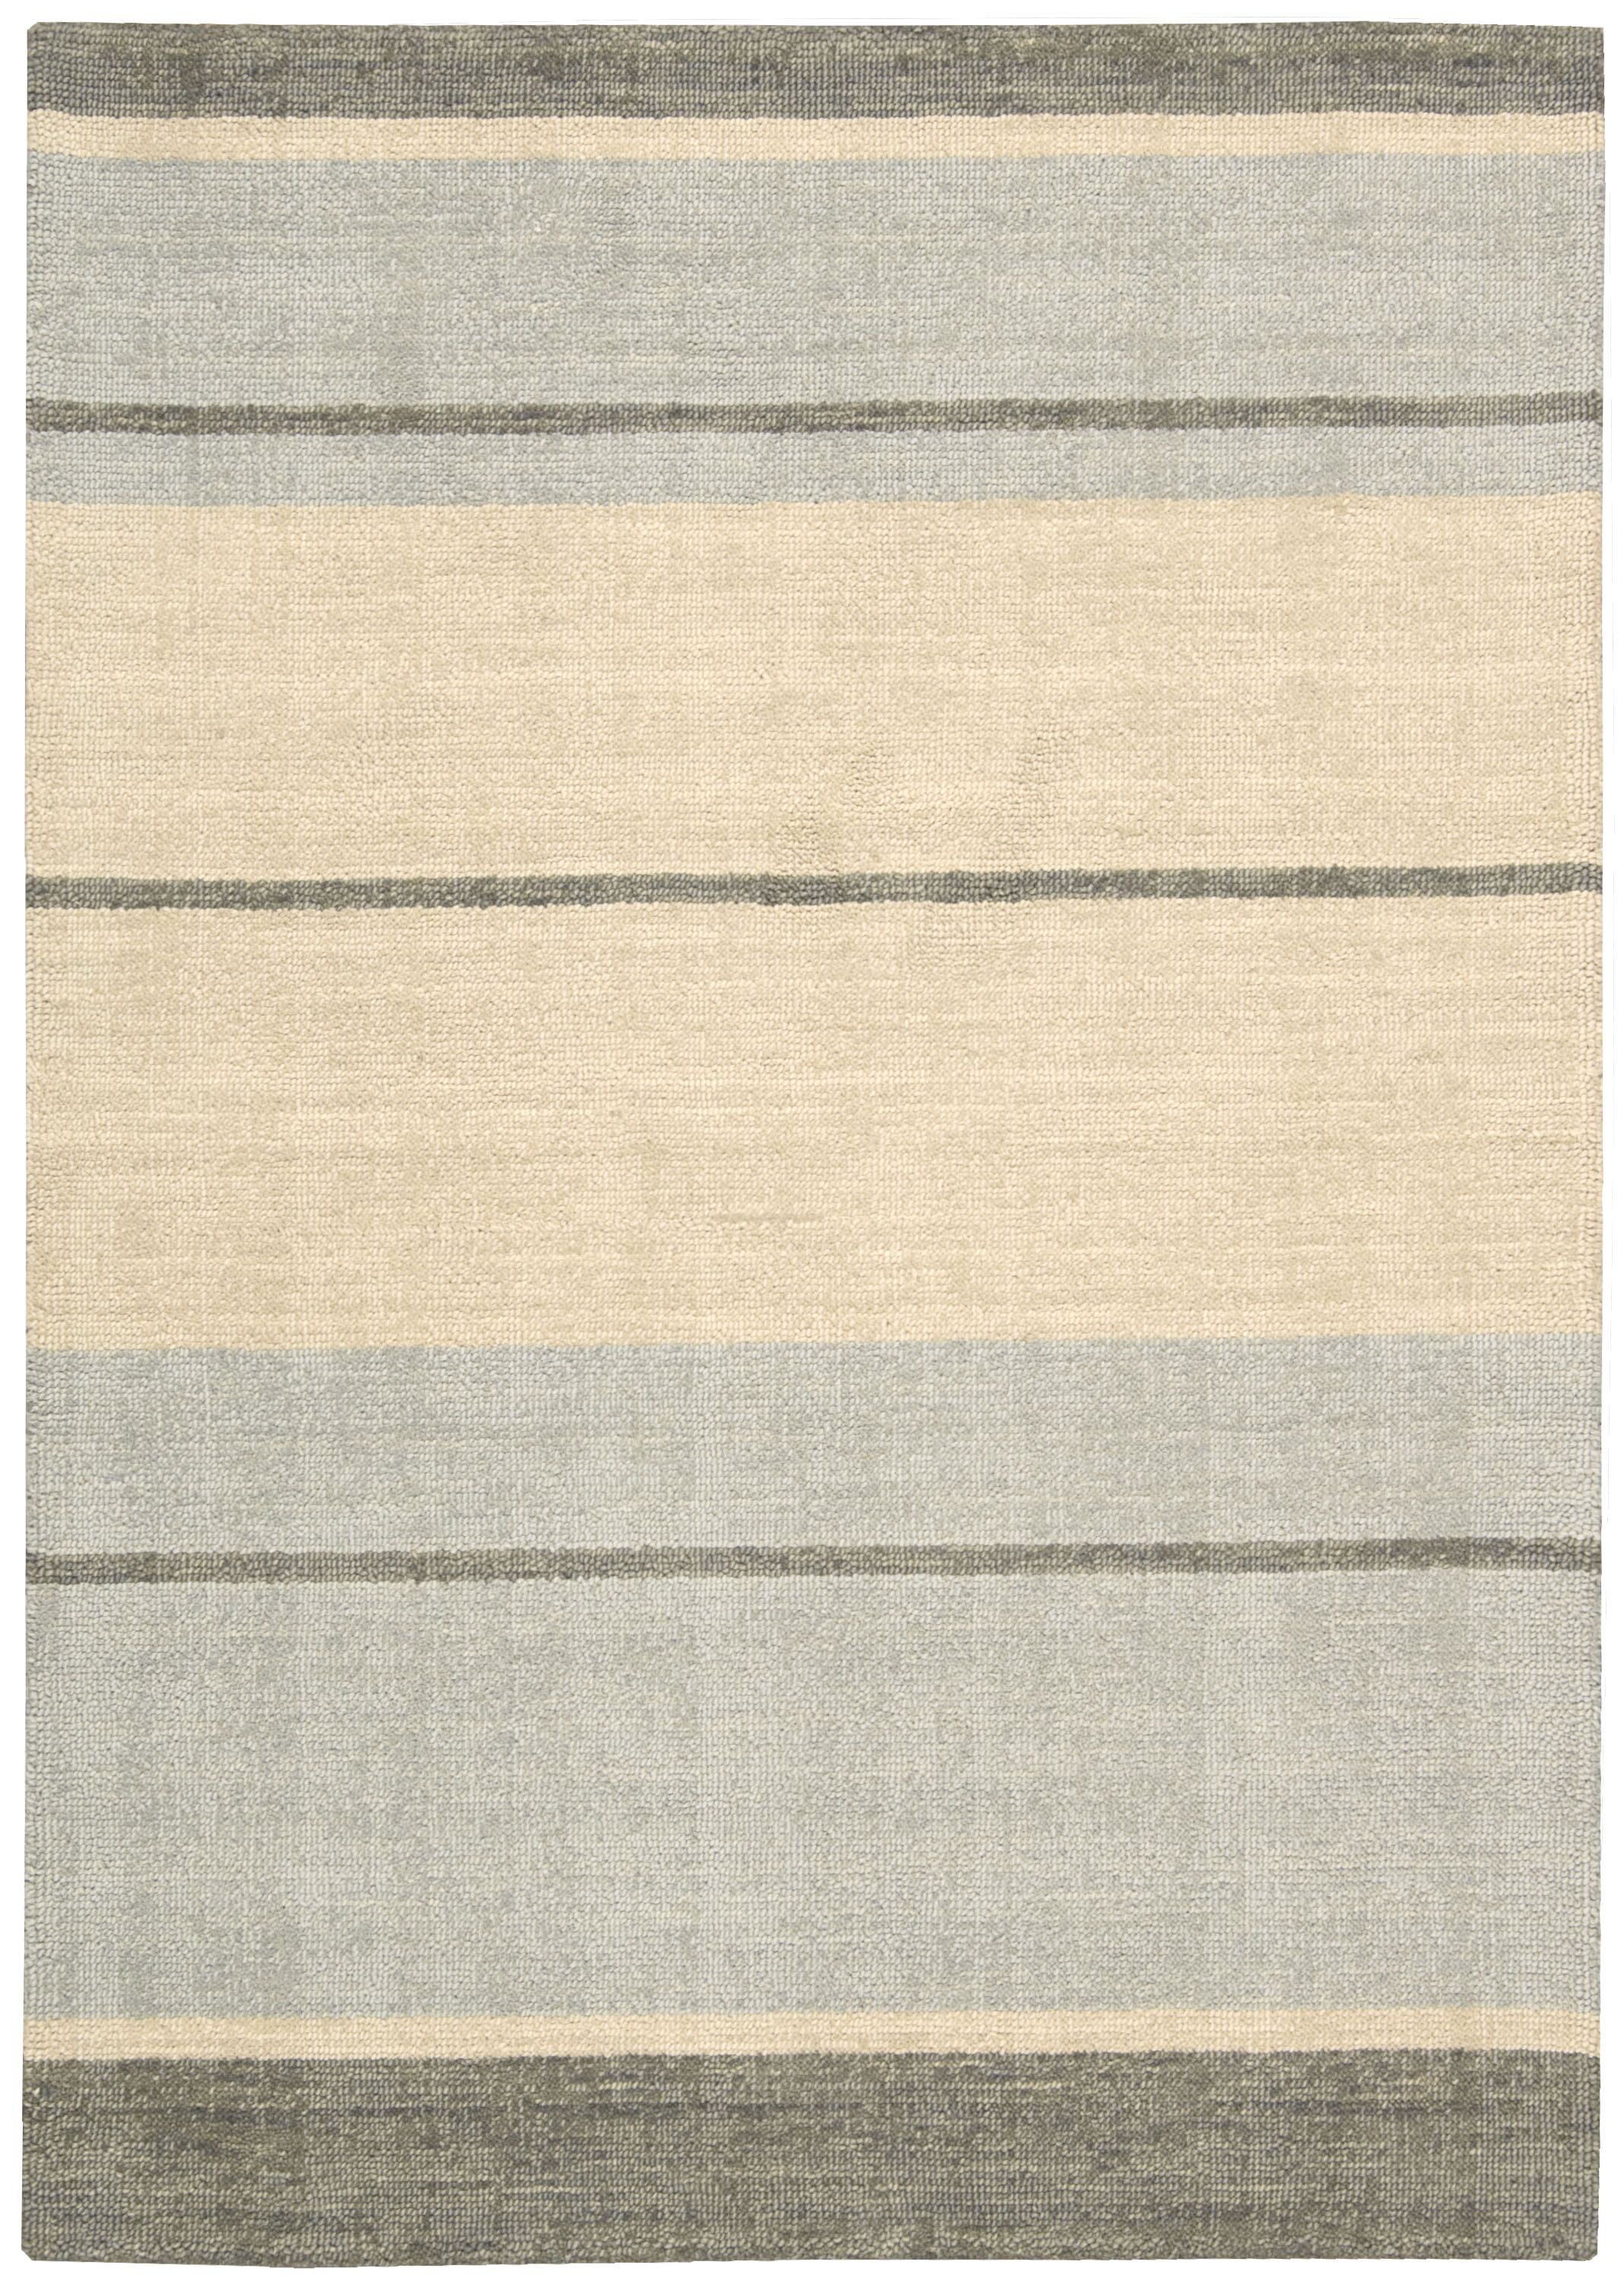 Tundra Hand-Woven Beige/Gray Area Rug Rug Size: Rectangle 4' x 6'